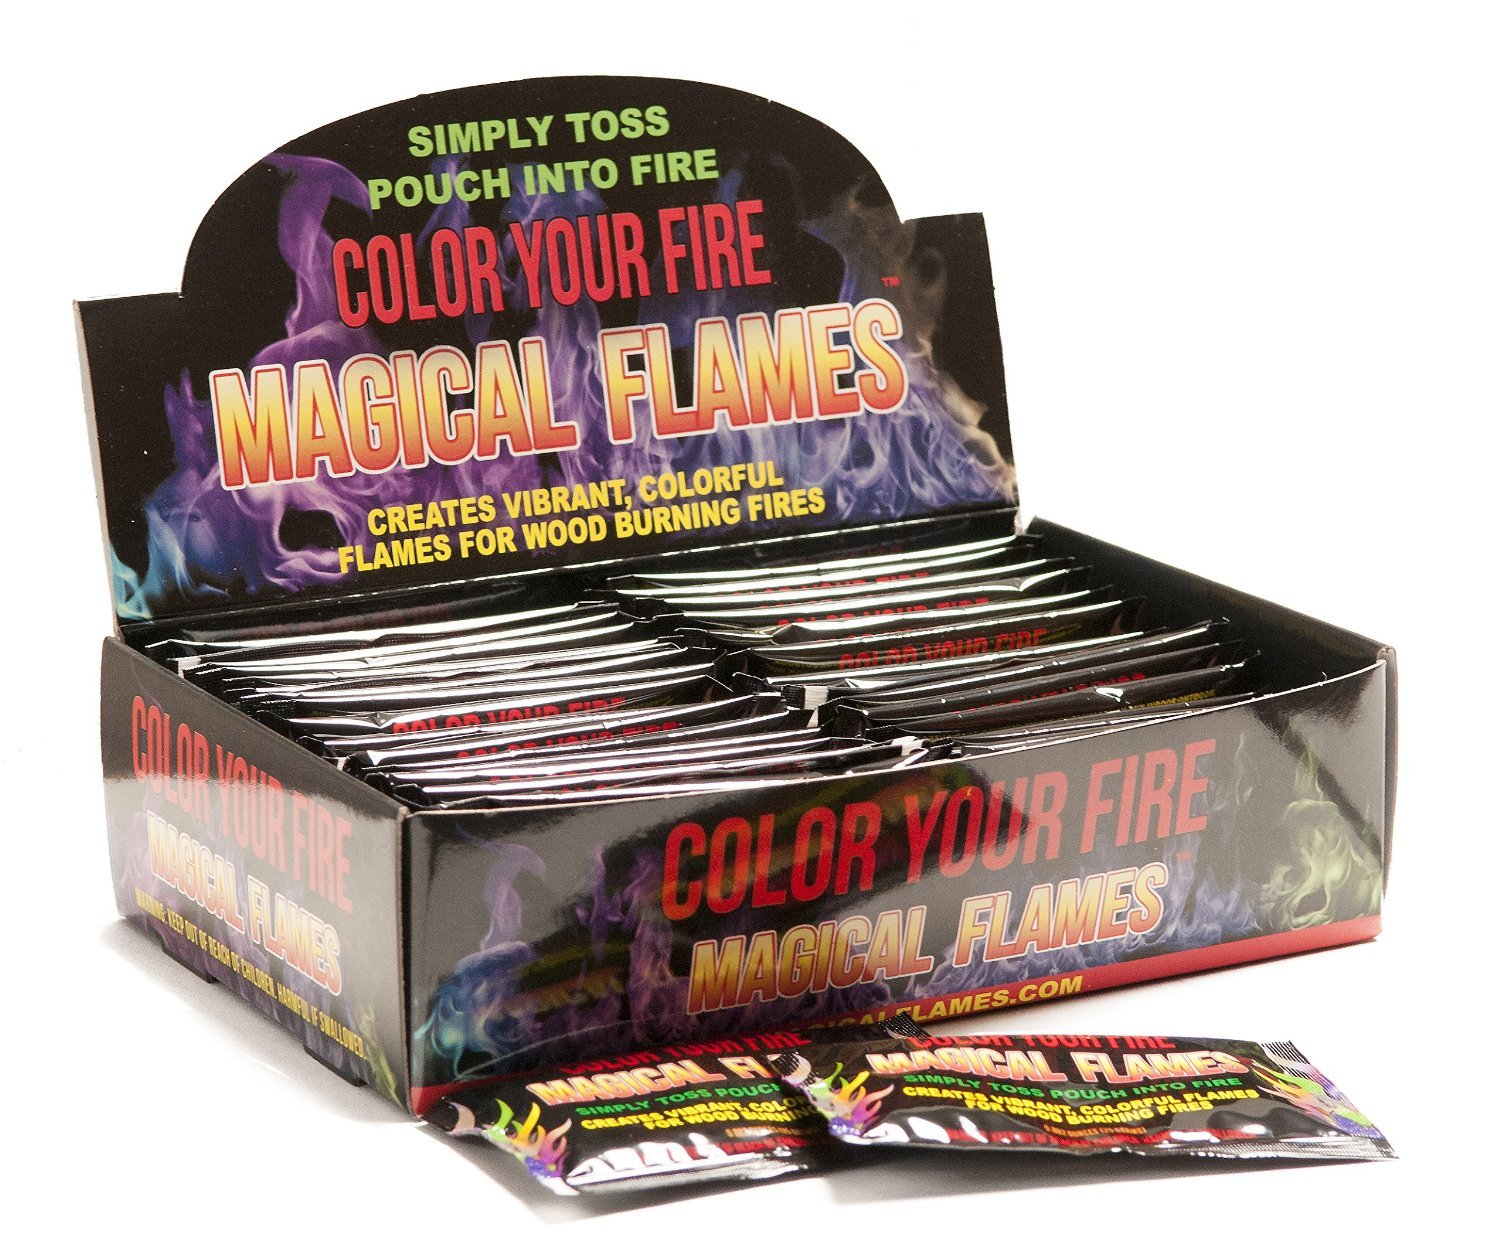 Magical Flames Creates Colorful Flames For Wood Burning Fires! (25) by Magical Flames